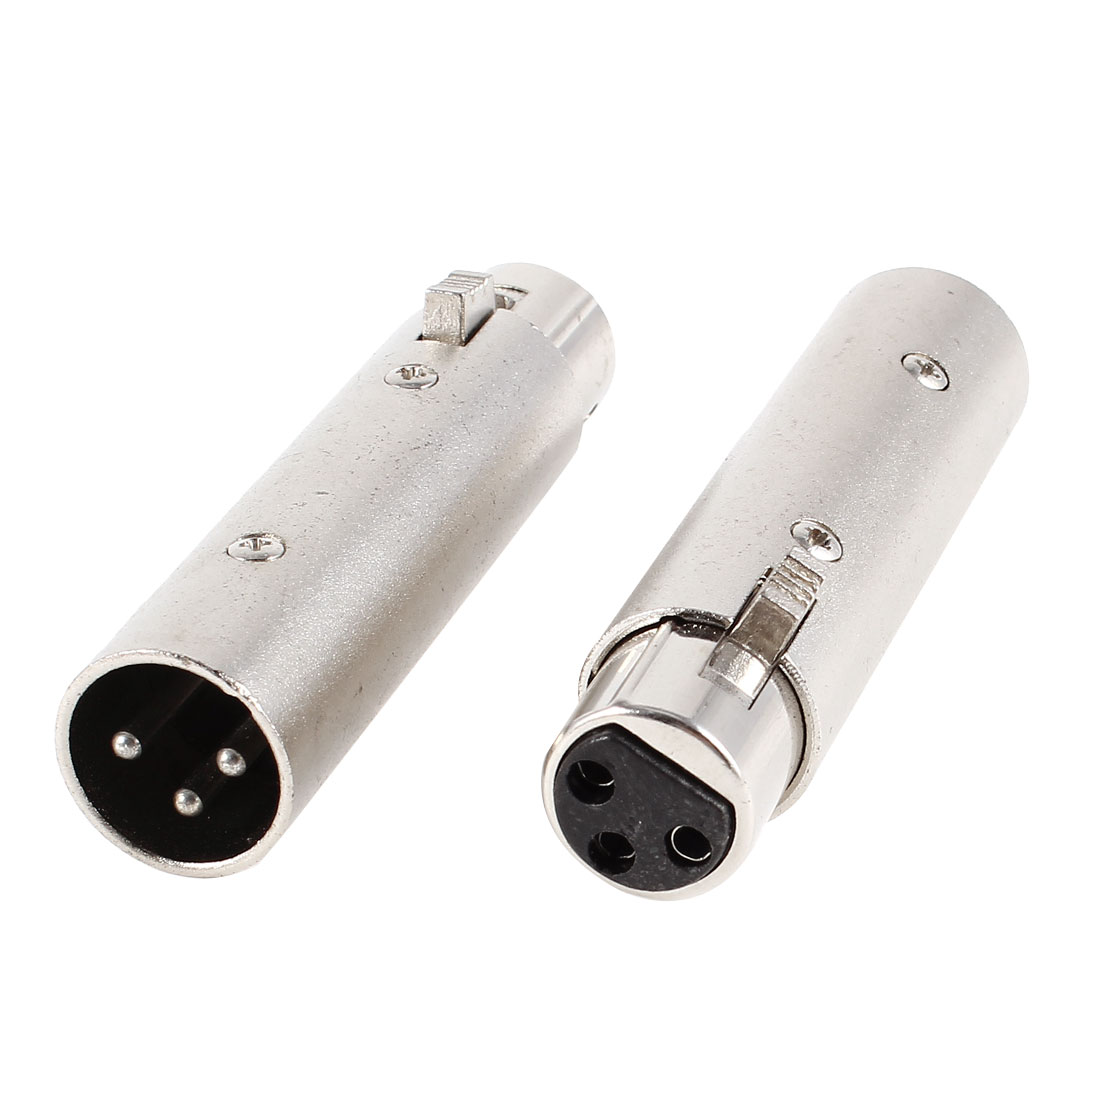 2 Pcs Female to Male XLR 3 Terminals Microphone Connector Adapter Black Silver Tone